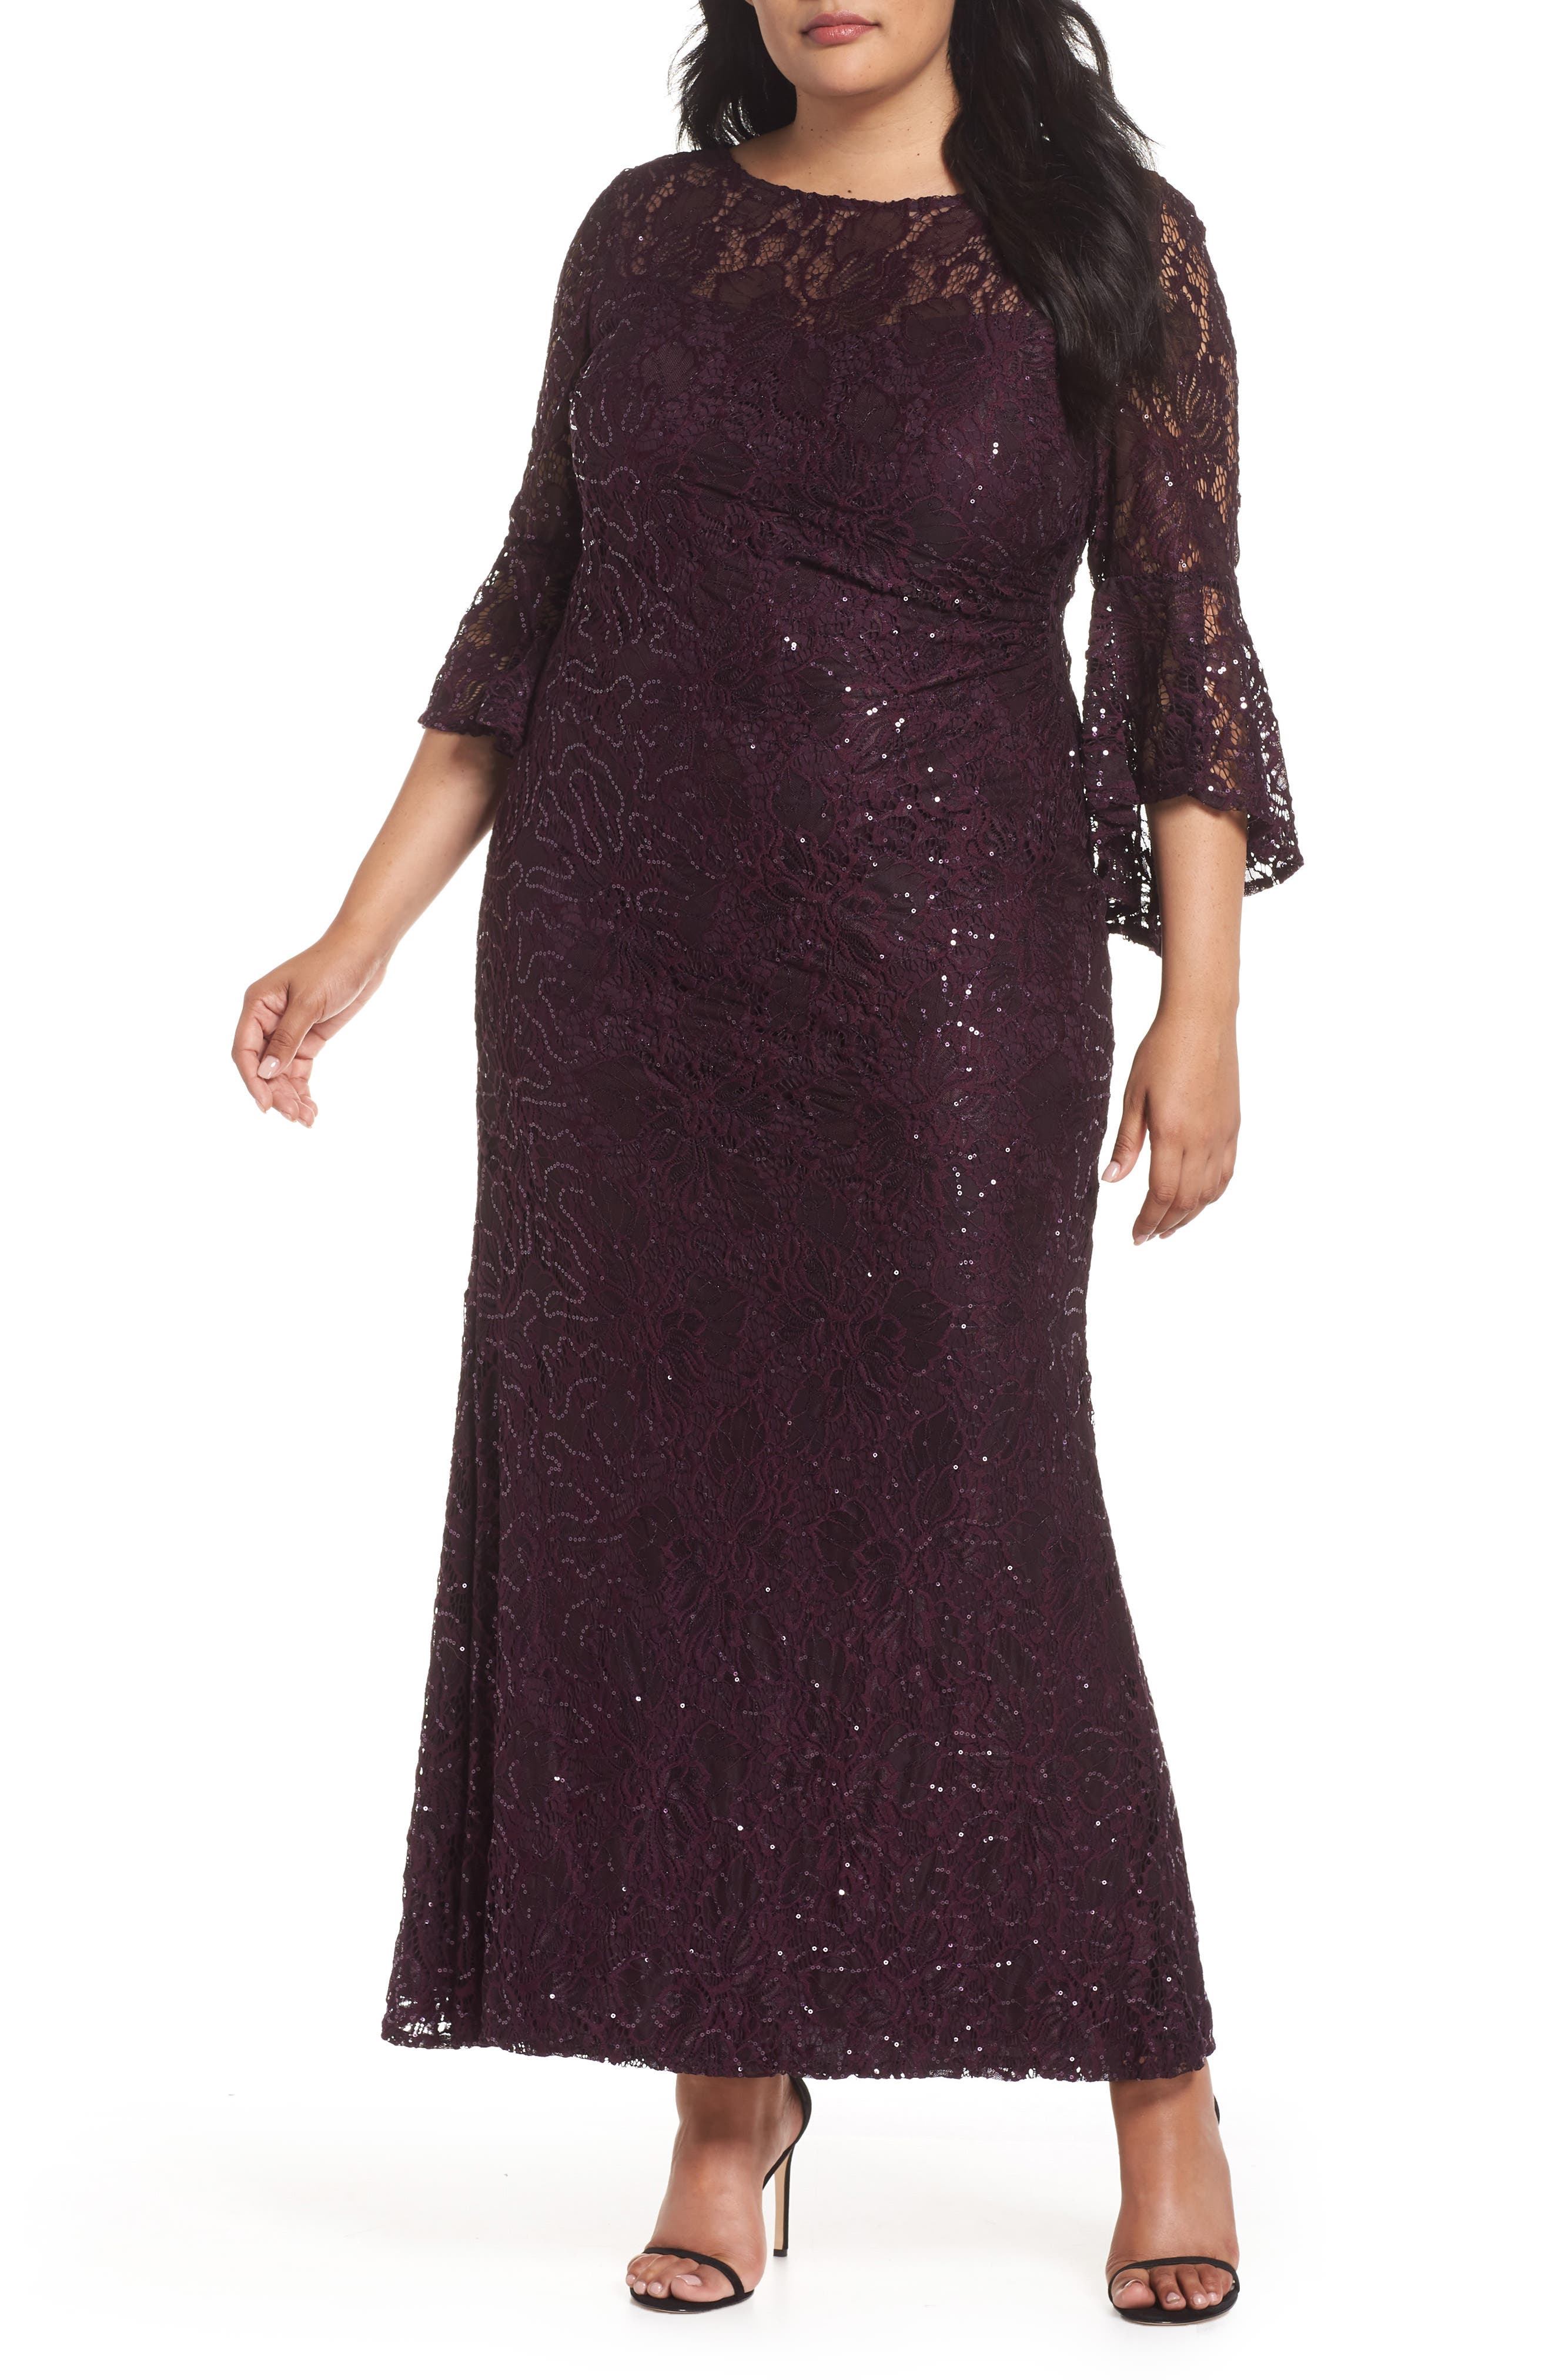 Vintage 1920s Dresses – Where to Buy Plus Size Womens Morgan  Co. Lace Bell Sleeve Gown Size 14W - Purple $139.00 AT vintagedancer.com